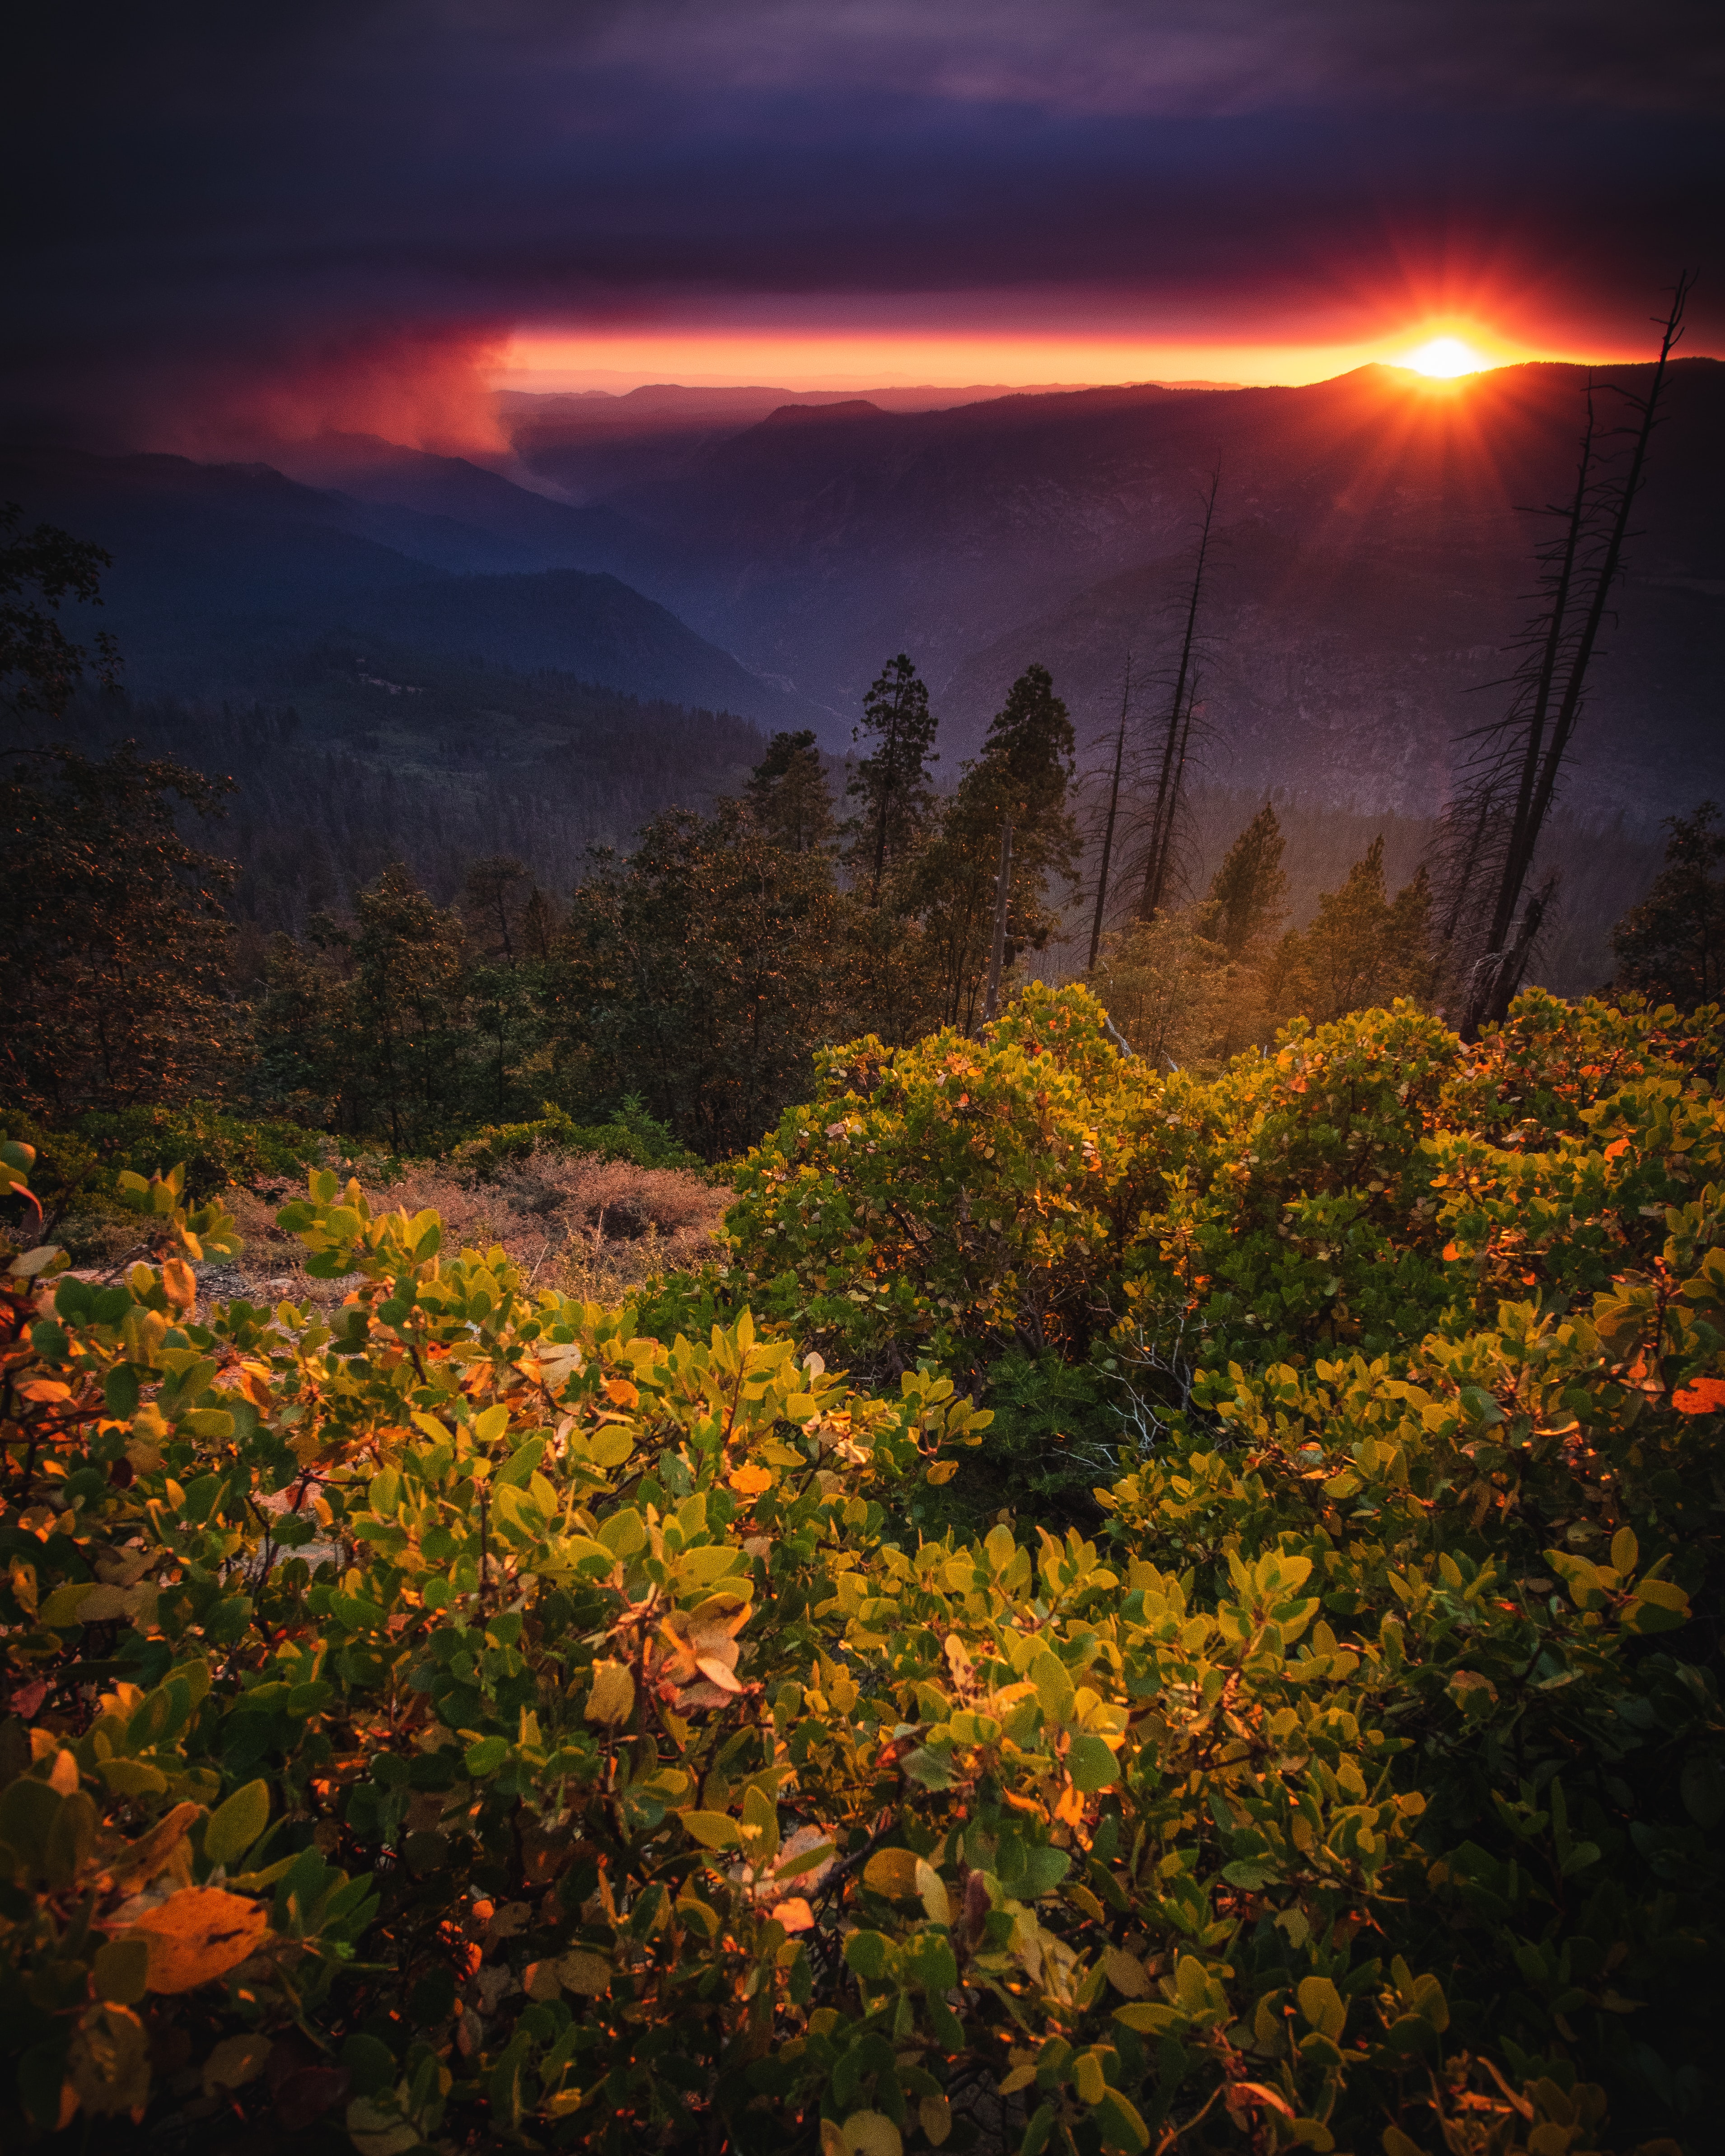 landscape photo of yellow flowers on mountain